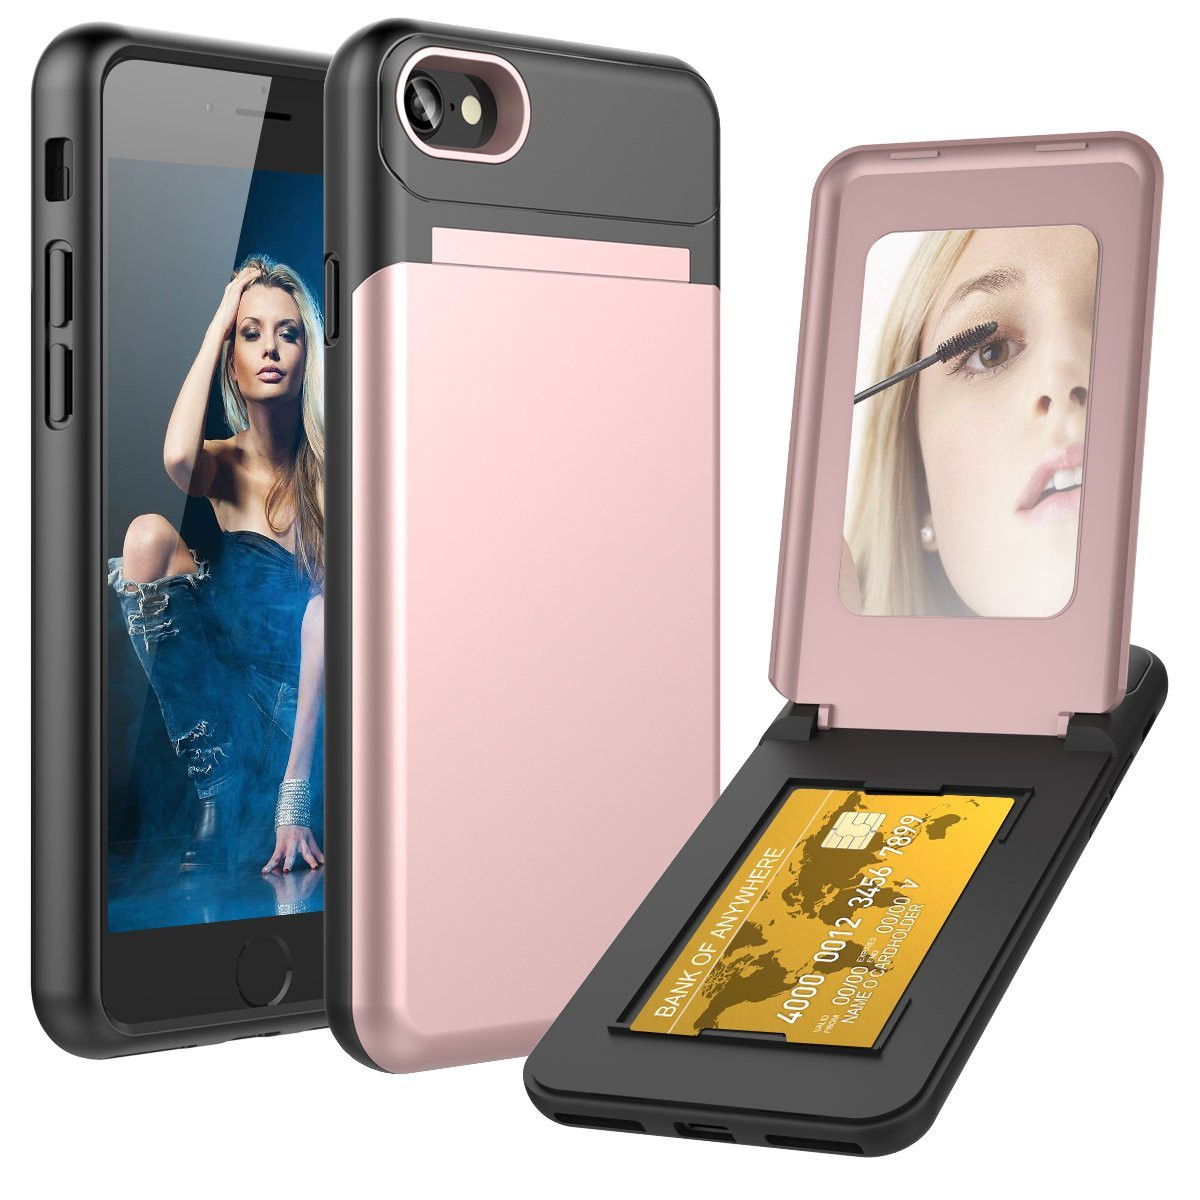 Apple iPhone 6s Plus -  Hard Phone Case with Hidden Mirror and Card Holder Compartment, Rose Gold/Black